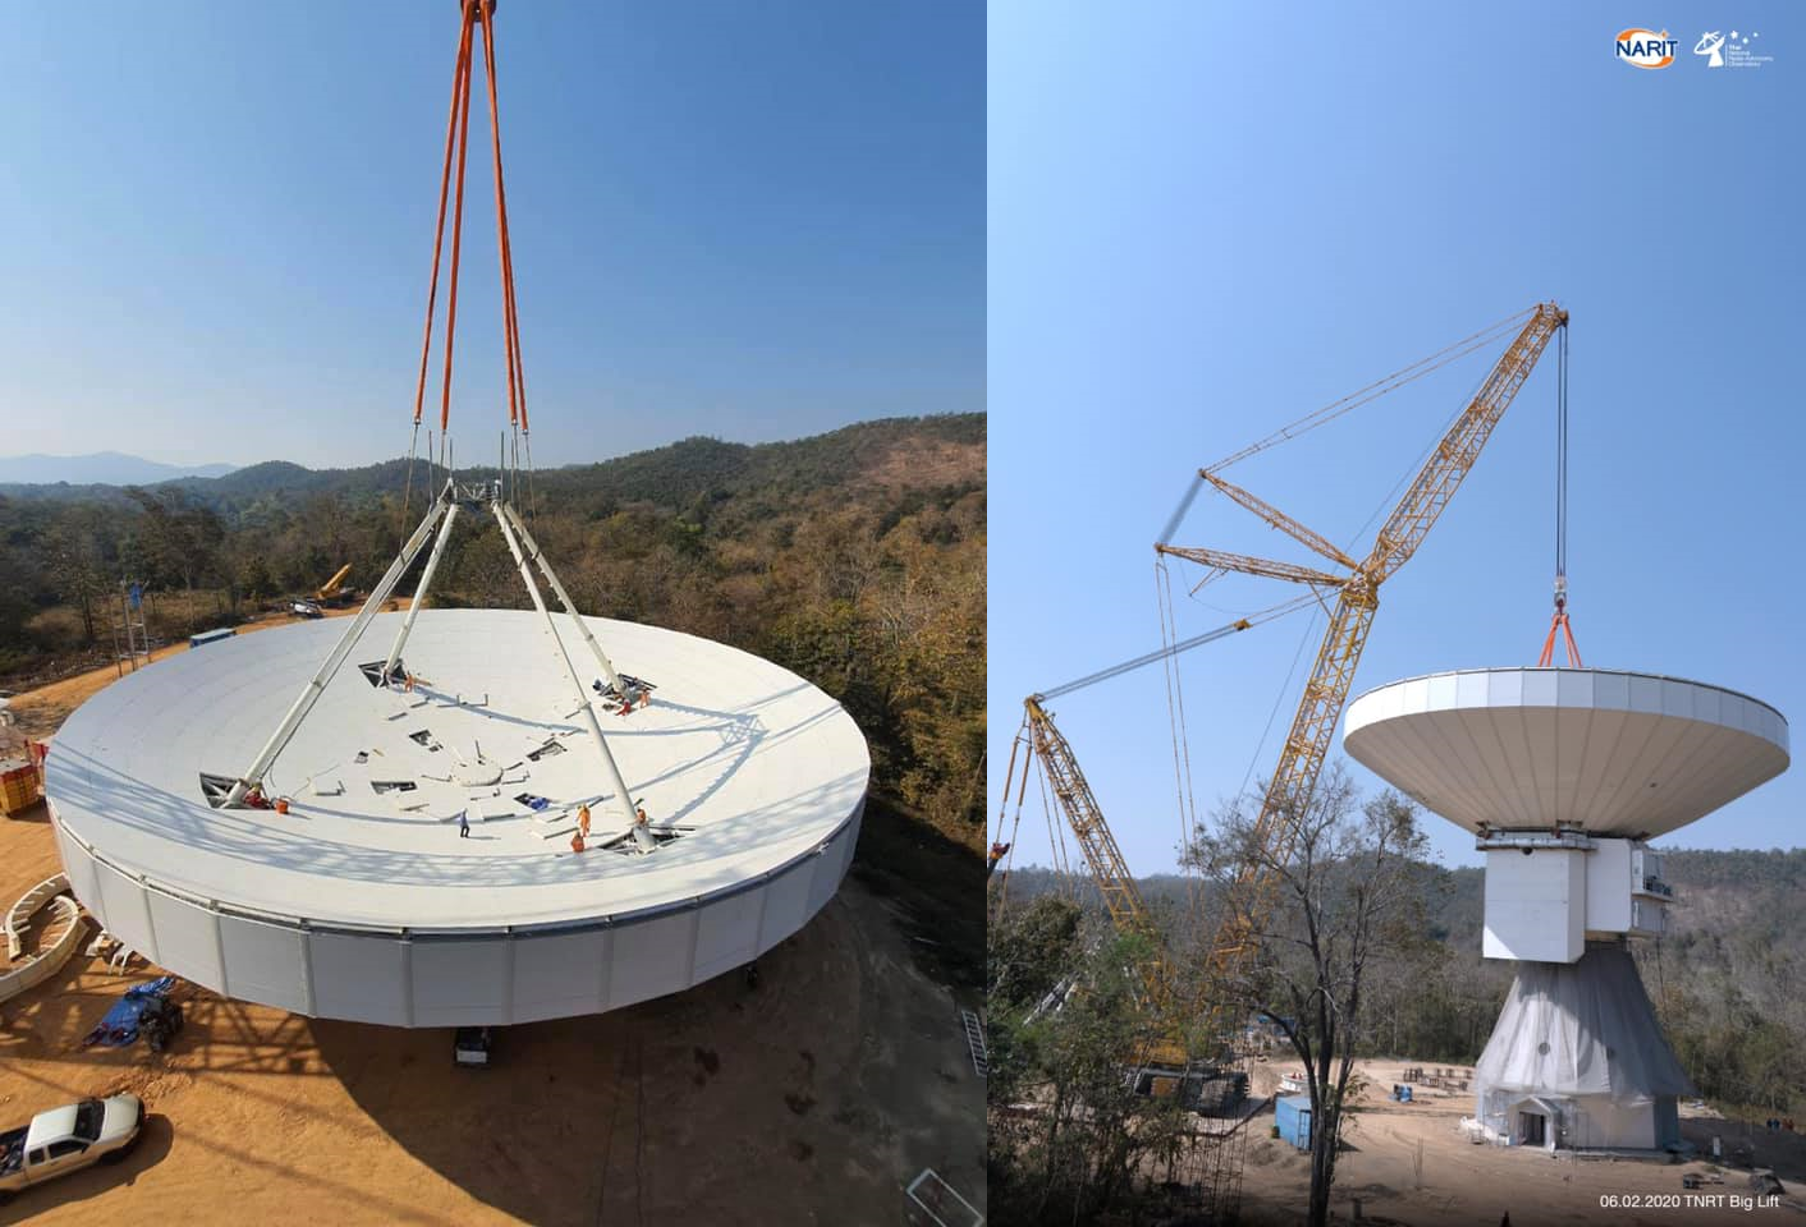 National Astronomical Research Institution of Thailand – Architectural Wall Panel Construction